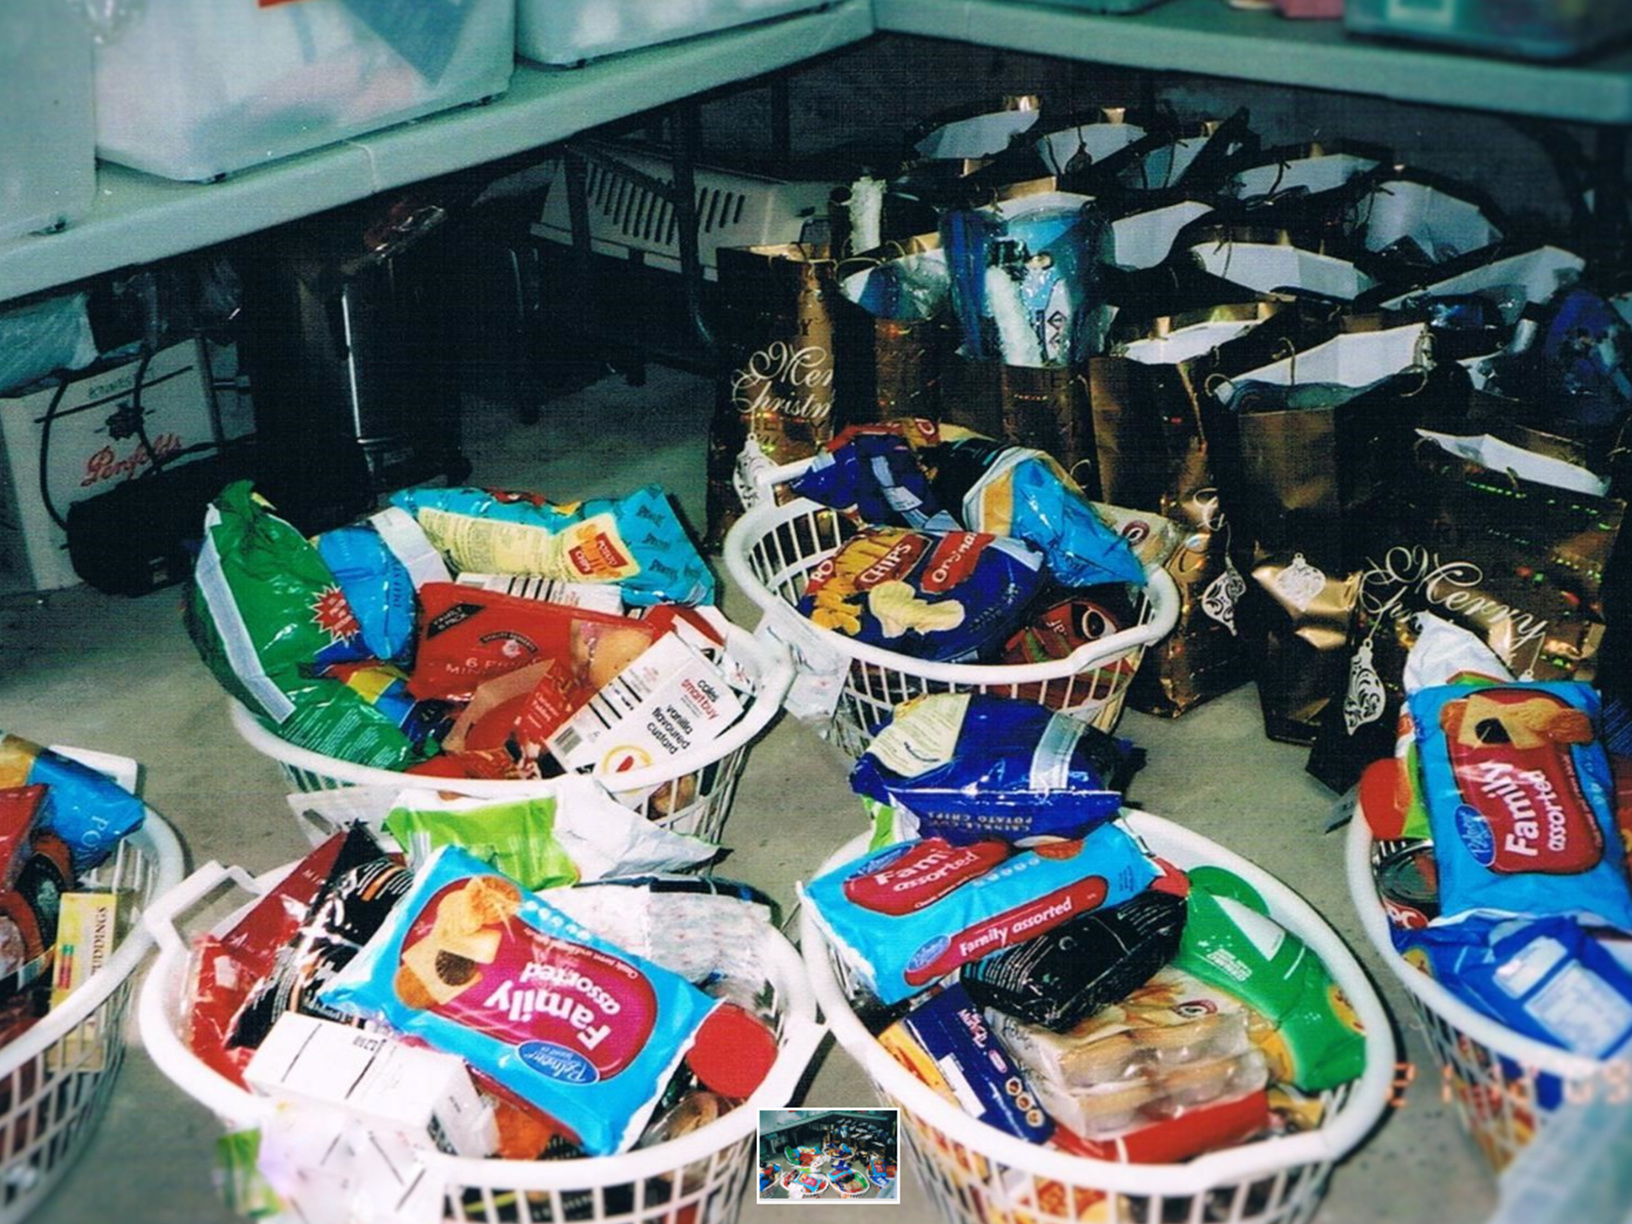 Christmas hampers filled with goodies